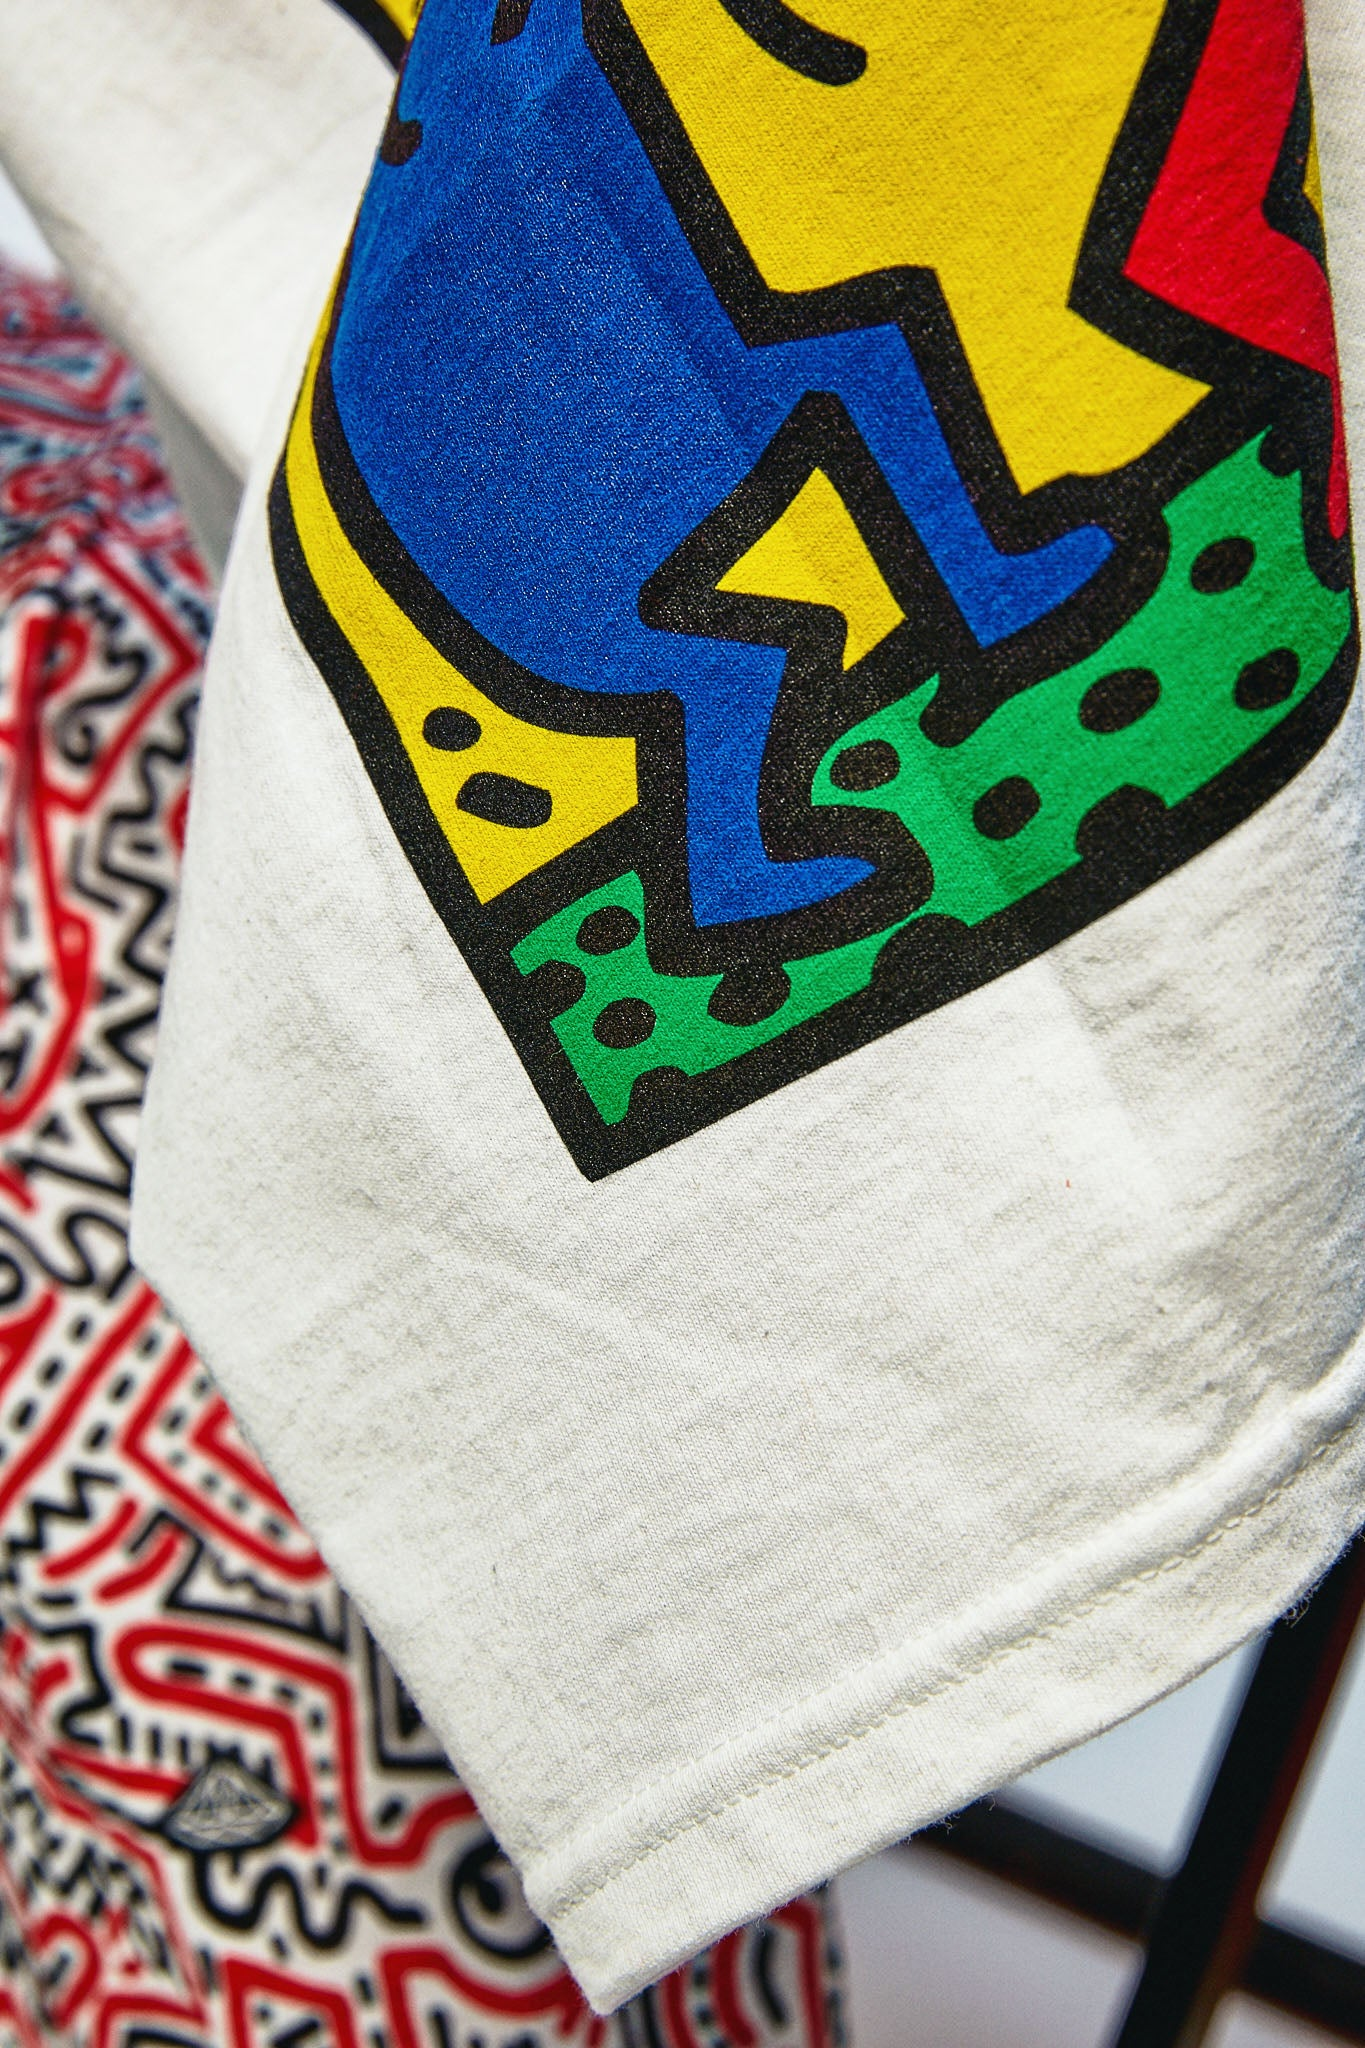 Keith Haring x Diamond Supply Co.